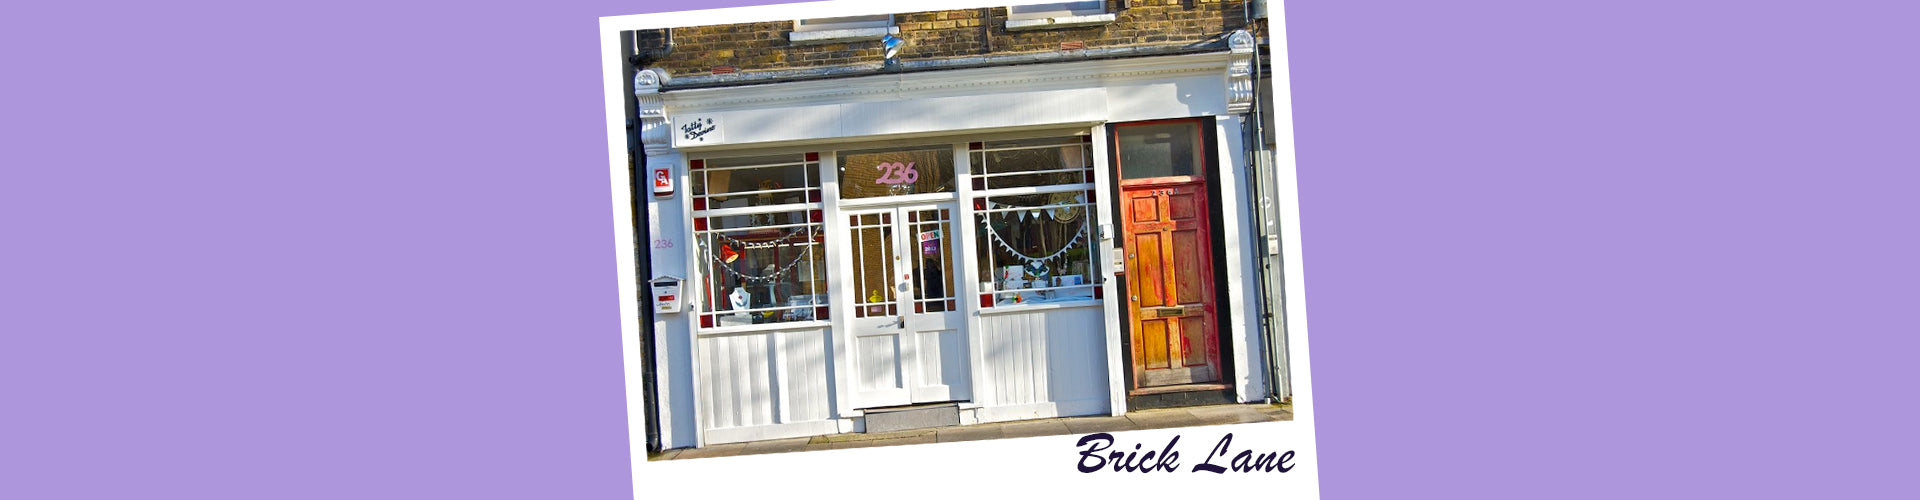 Visit Our Brick Lane Store!